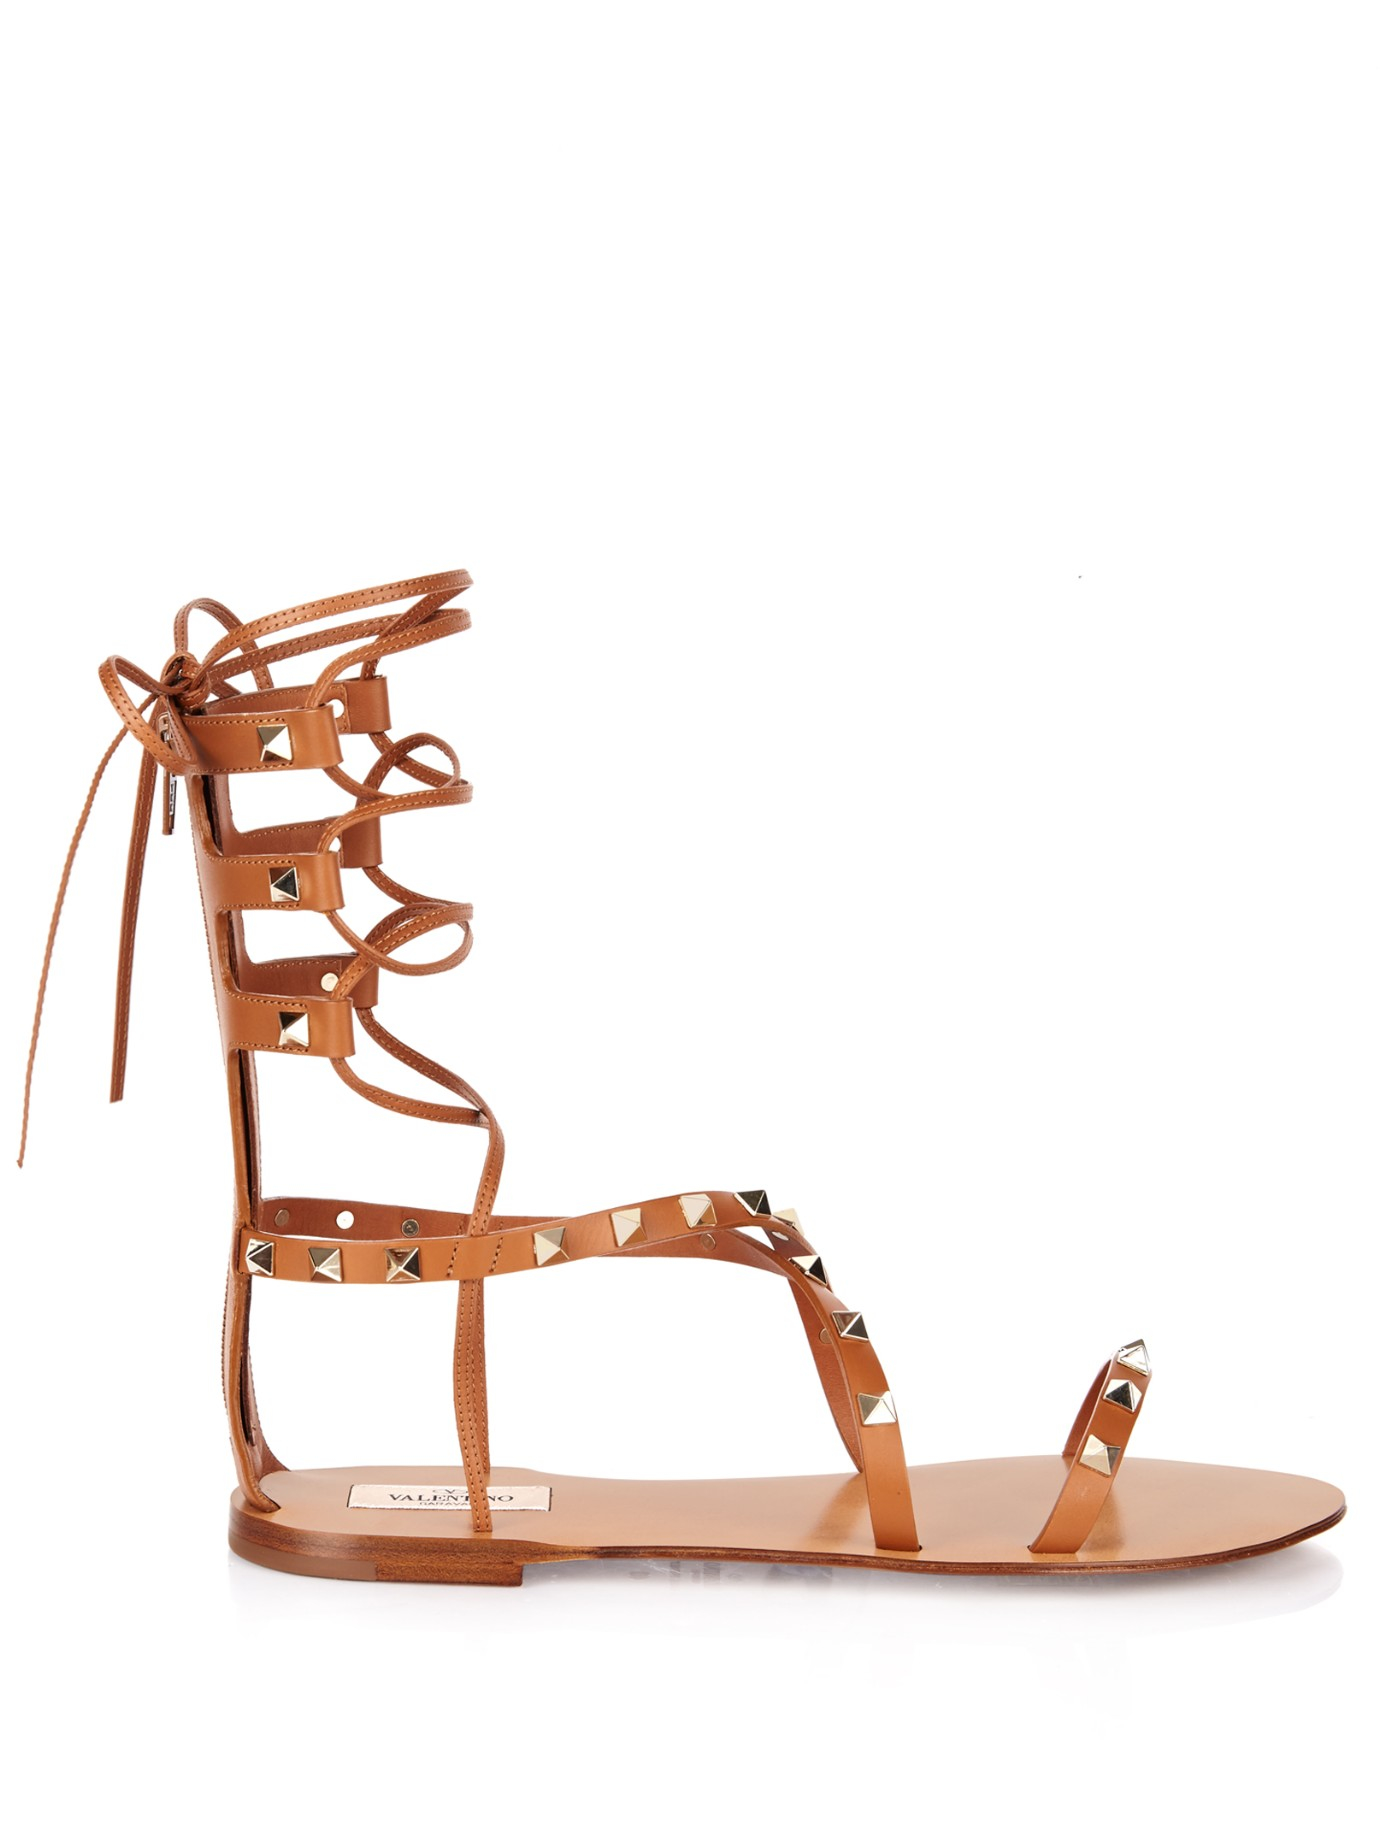 90c7ca7a8827 Lyst - Valentino Rockstud Leather Gladiator Sandals in Brown